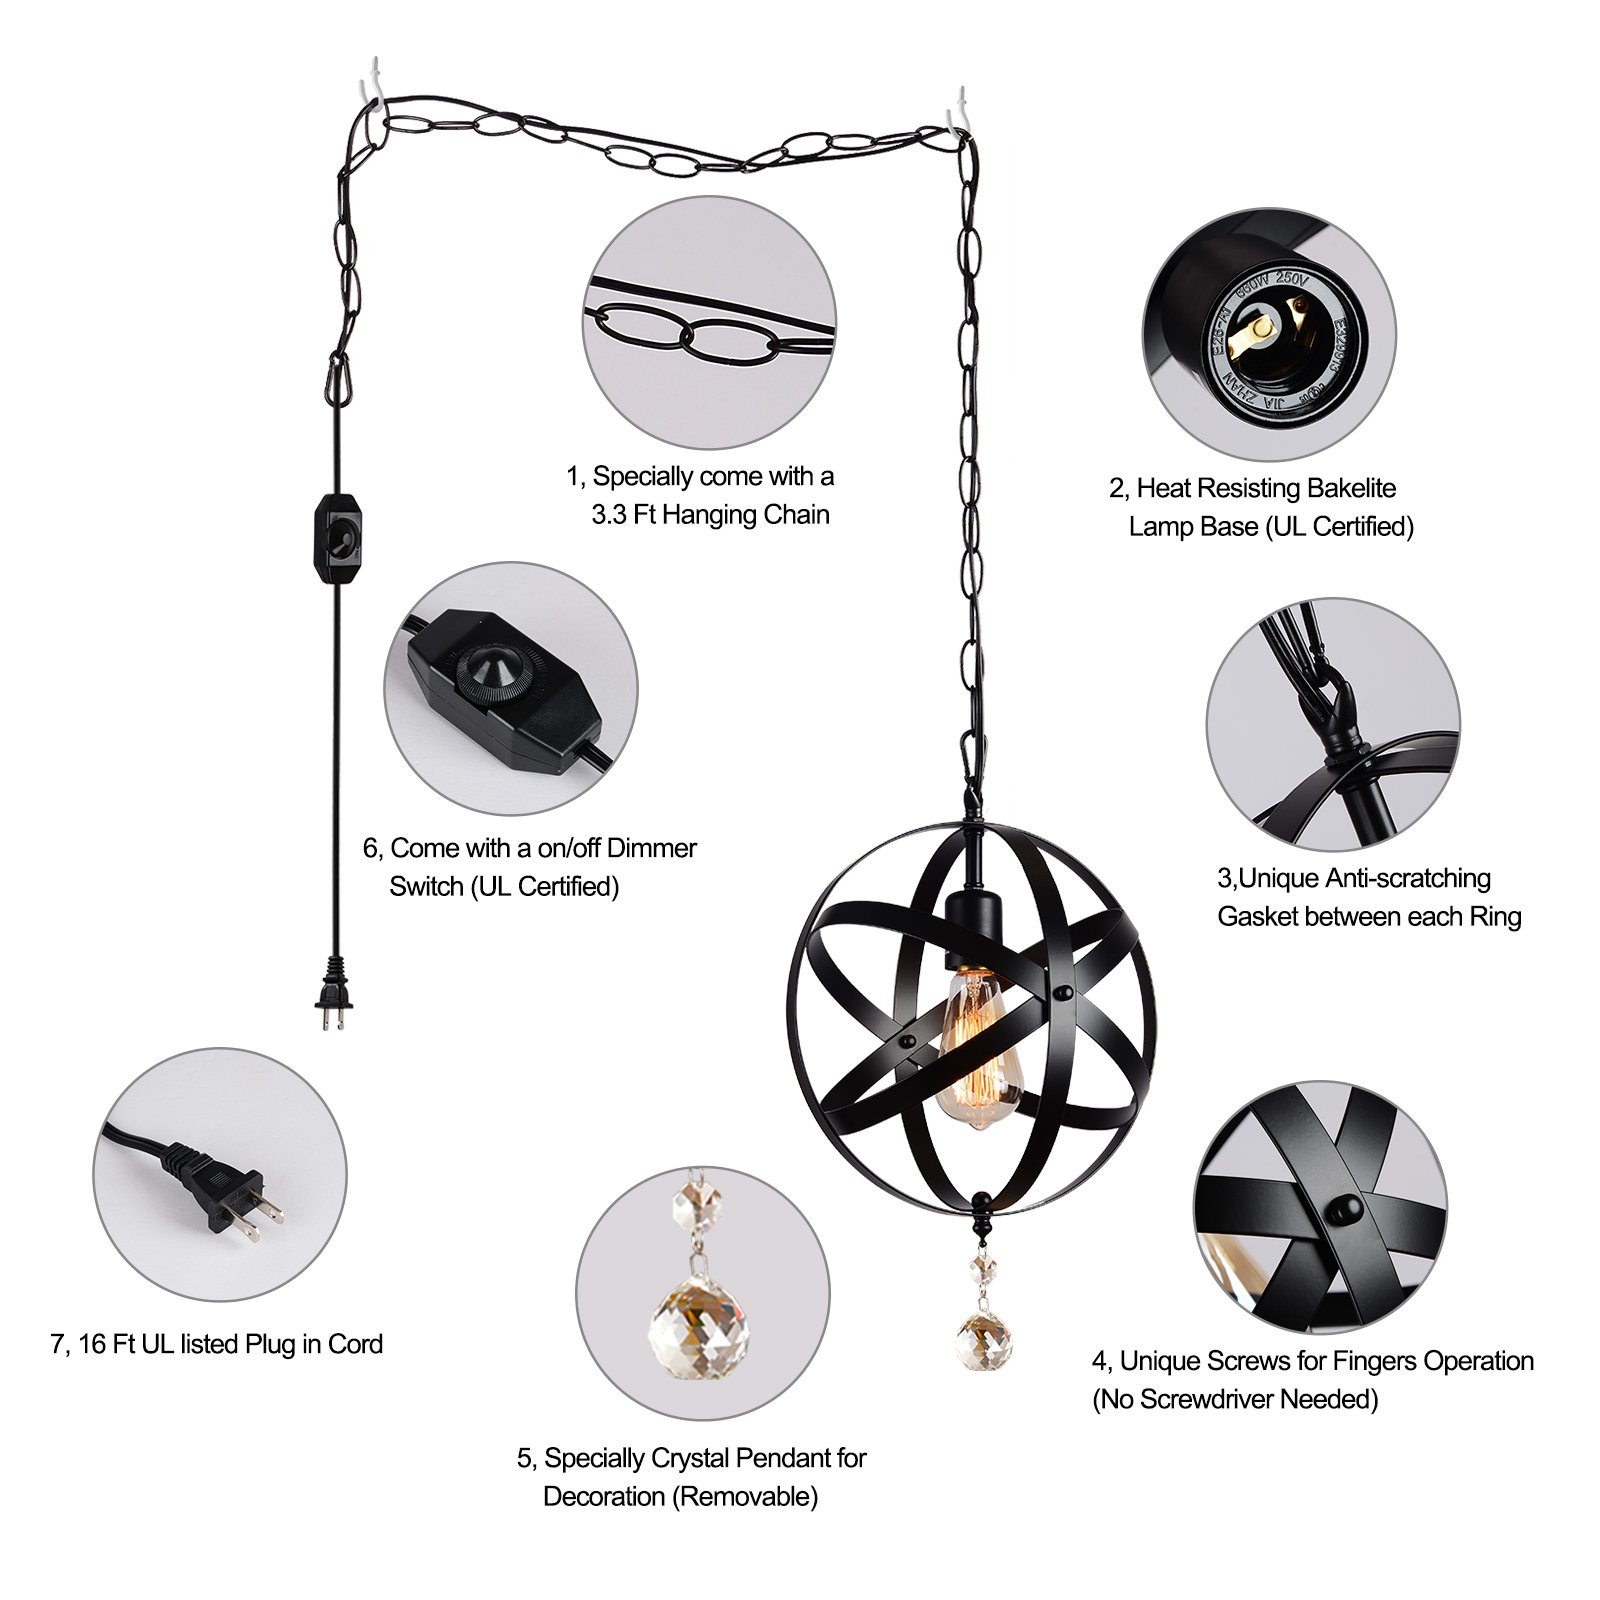 HMVPL Plug-in Industrial Globe Pendant Lights with 16.4 Ft Hanging Cord and Dimmable On/Off Switch, Vintage Metal Spherical Lantern Chandelier Ceiling Light Fixture by HMVPL (Image #5)